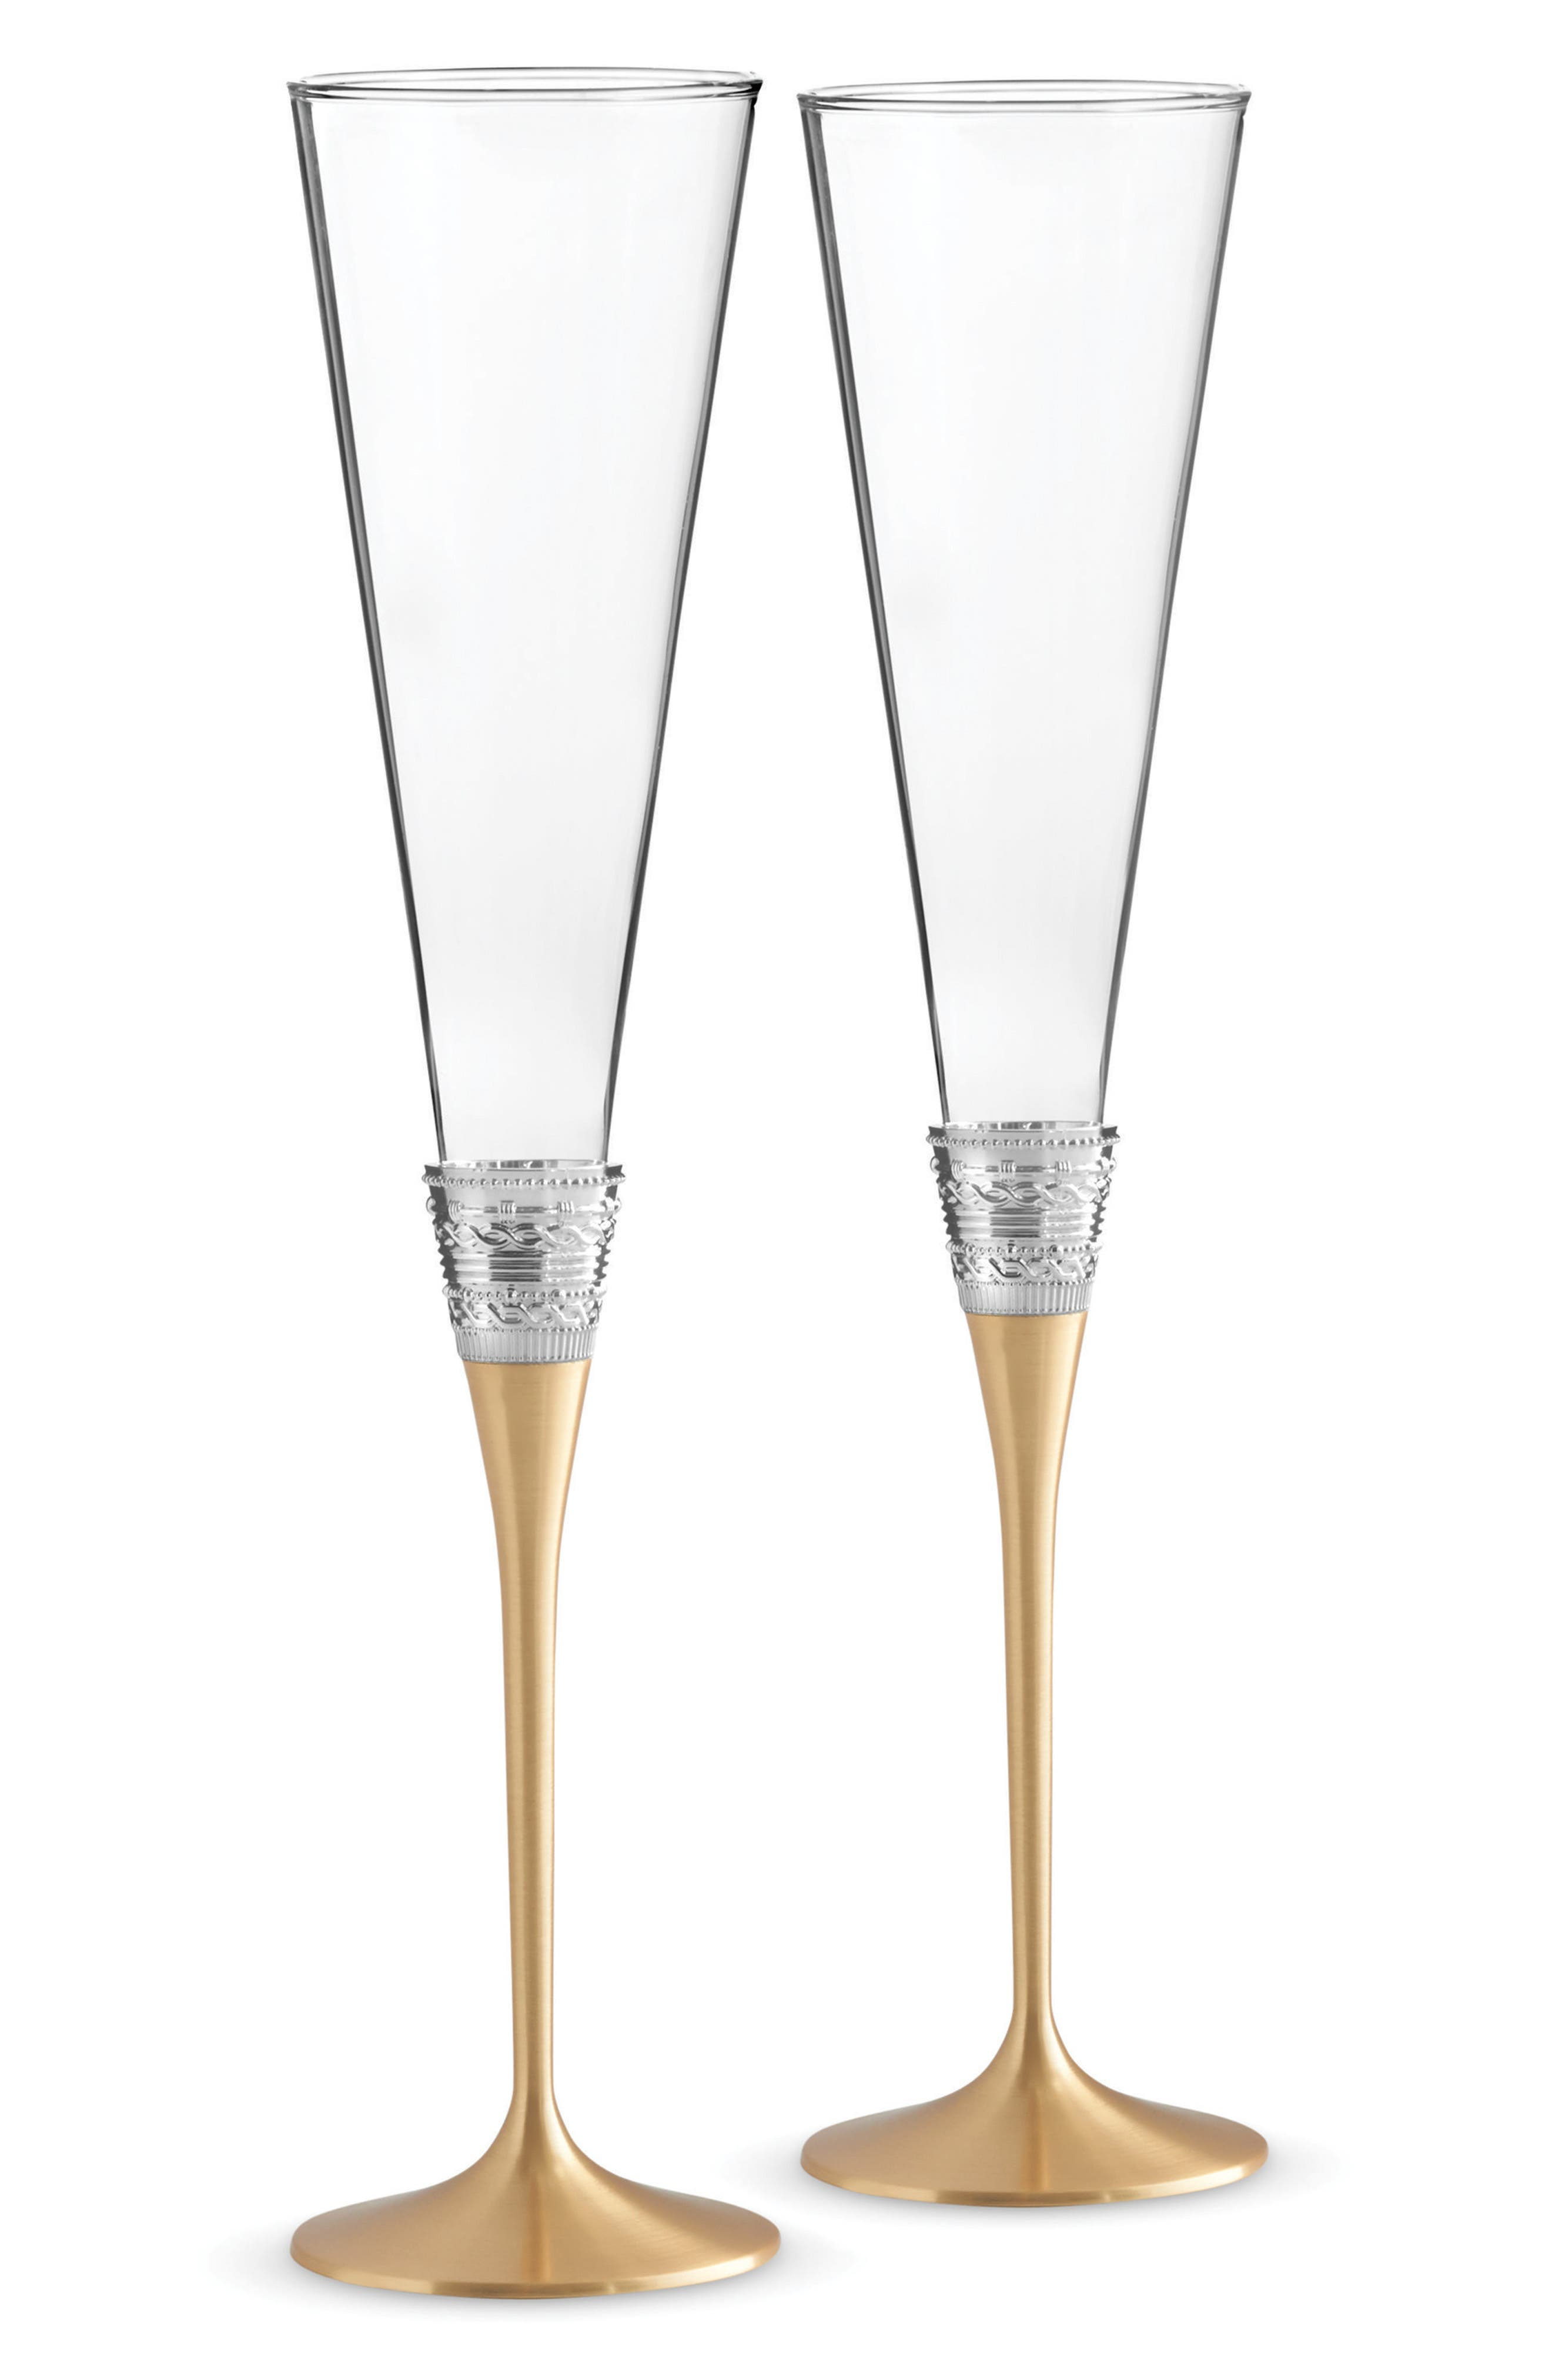 x Wedgwood With Love Collection Set of 2 Toasting Flutes,                             Main thumbnail 1, color,                             710